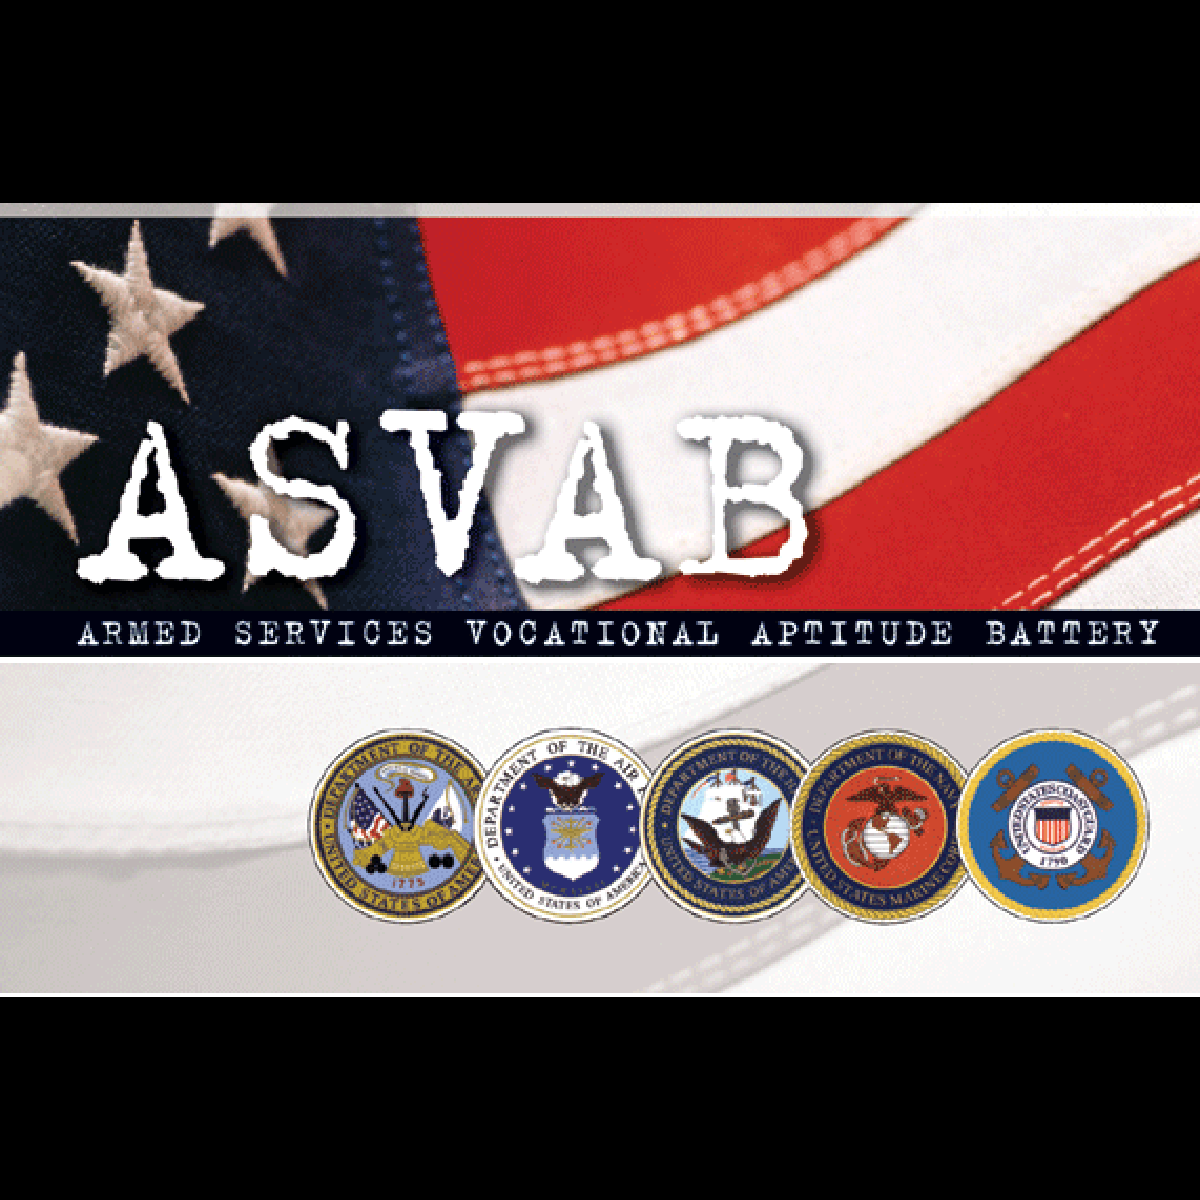 ASVAB Test - October 21, 2020